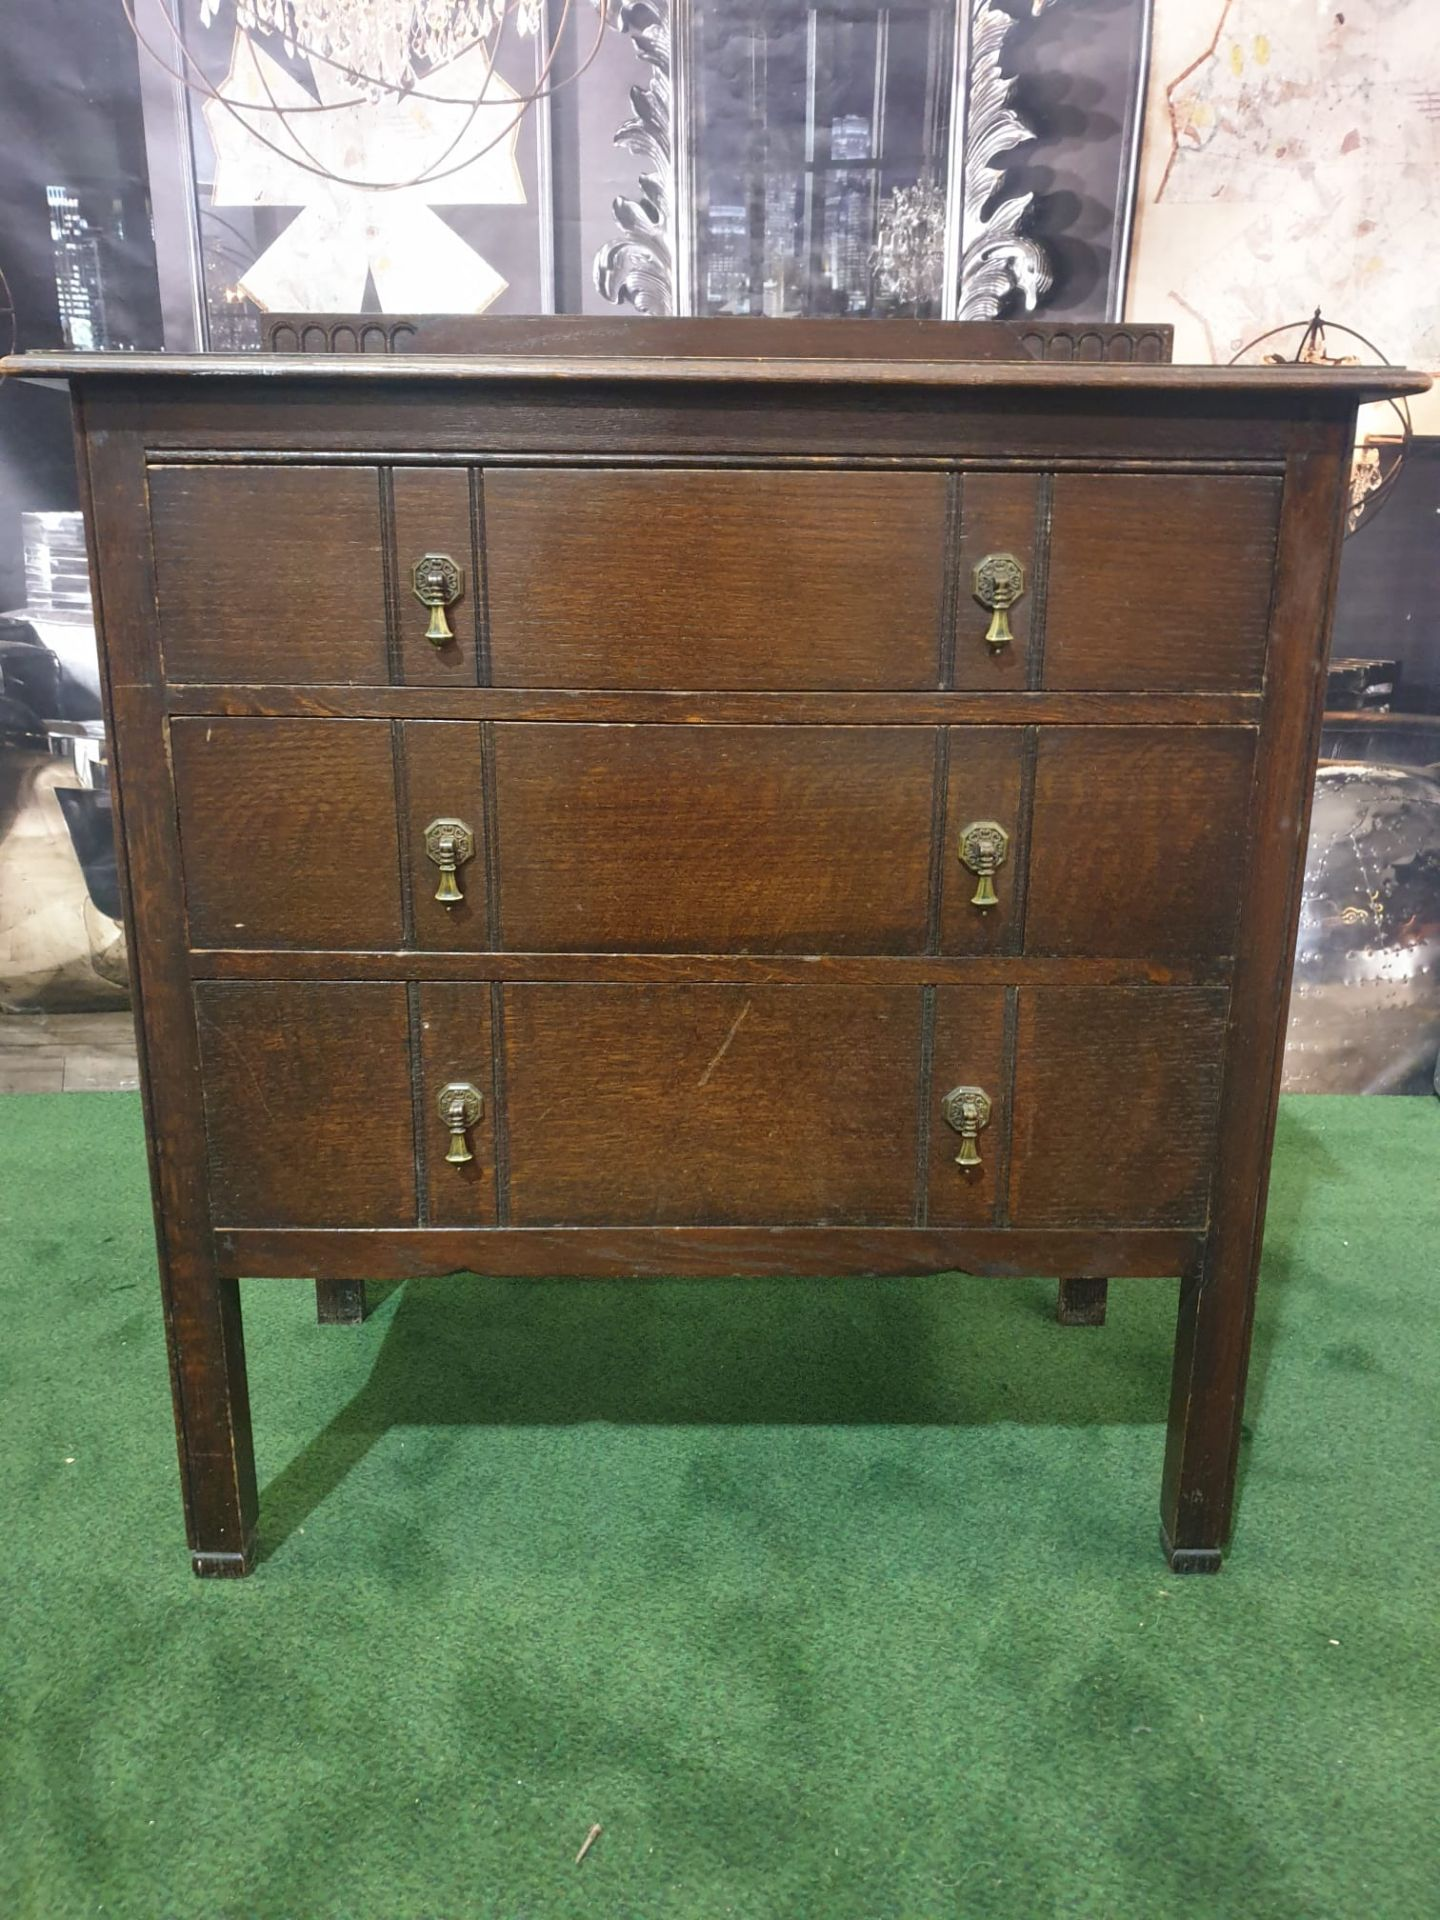 Late Georgian Mahogany Chest Of Drawers three Drawer chest 84W x 46D x 95H - Image 3 of 5